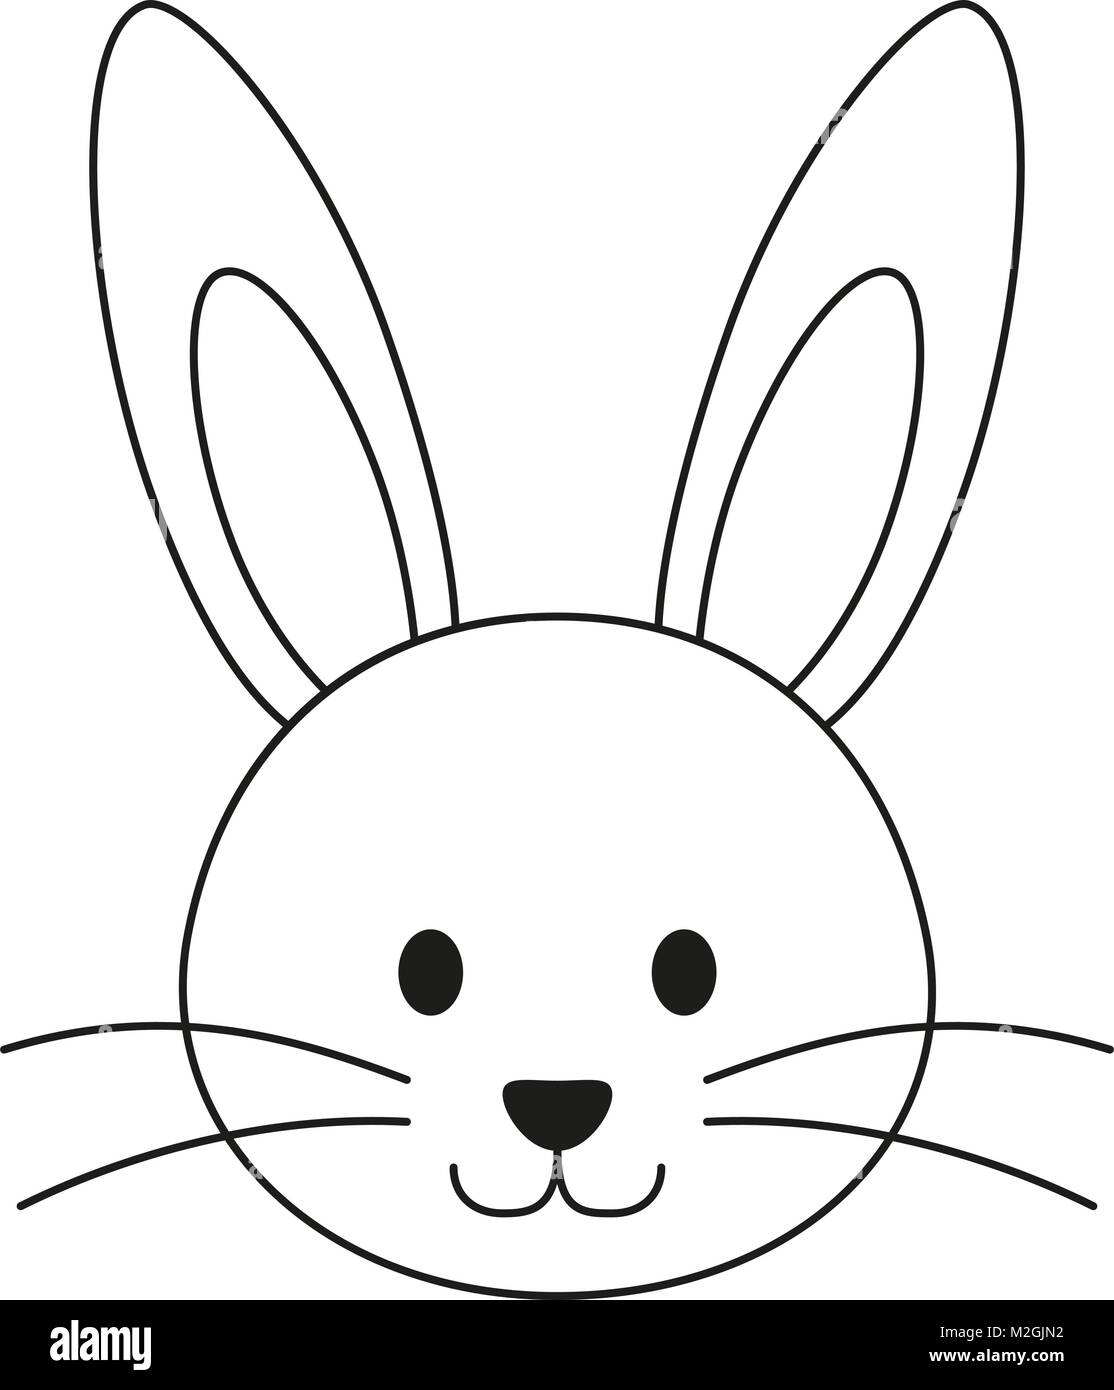 Line art black and white rabbit bunny face icon poster. Coloring ...